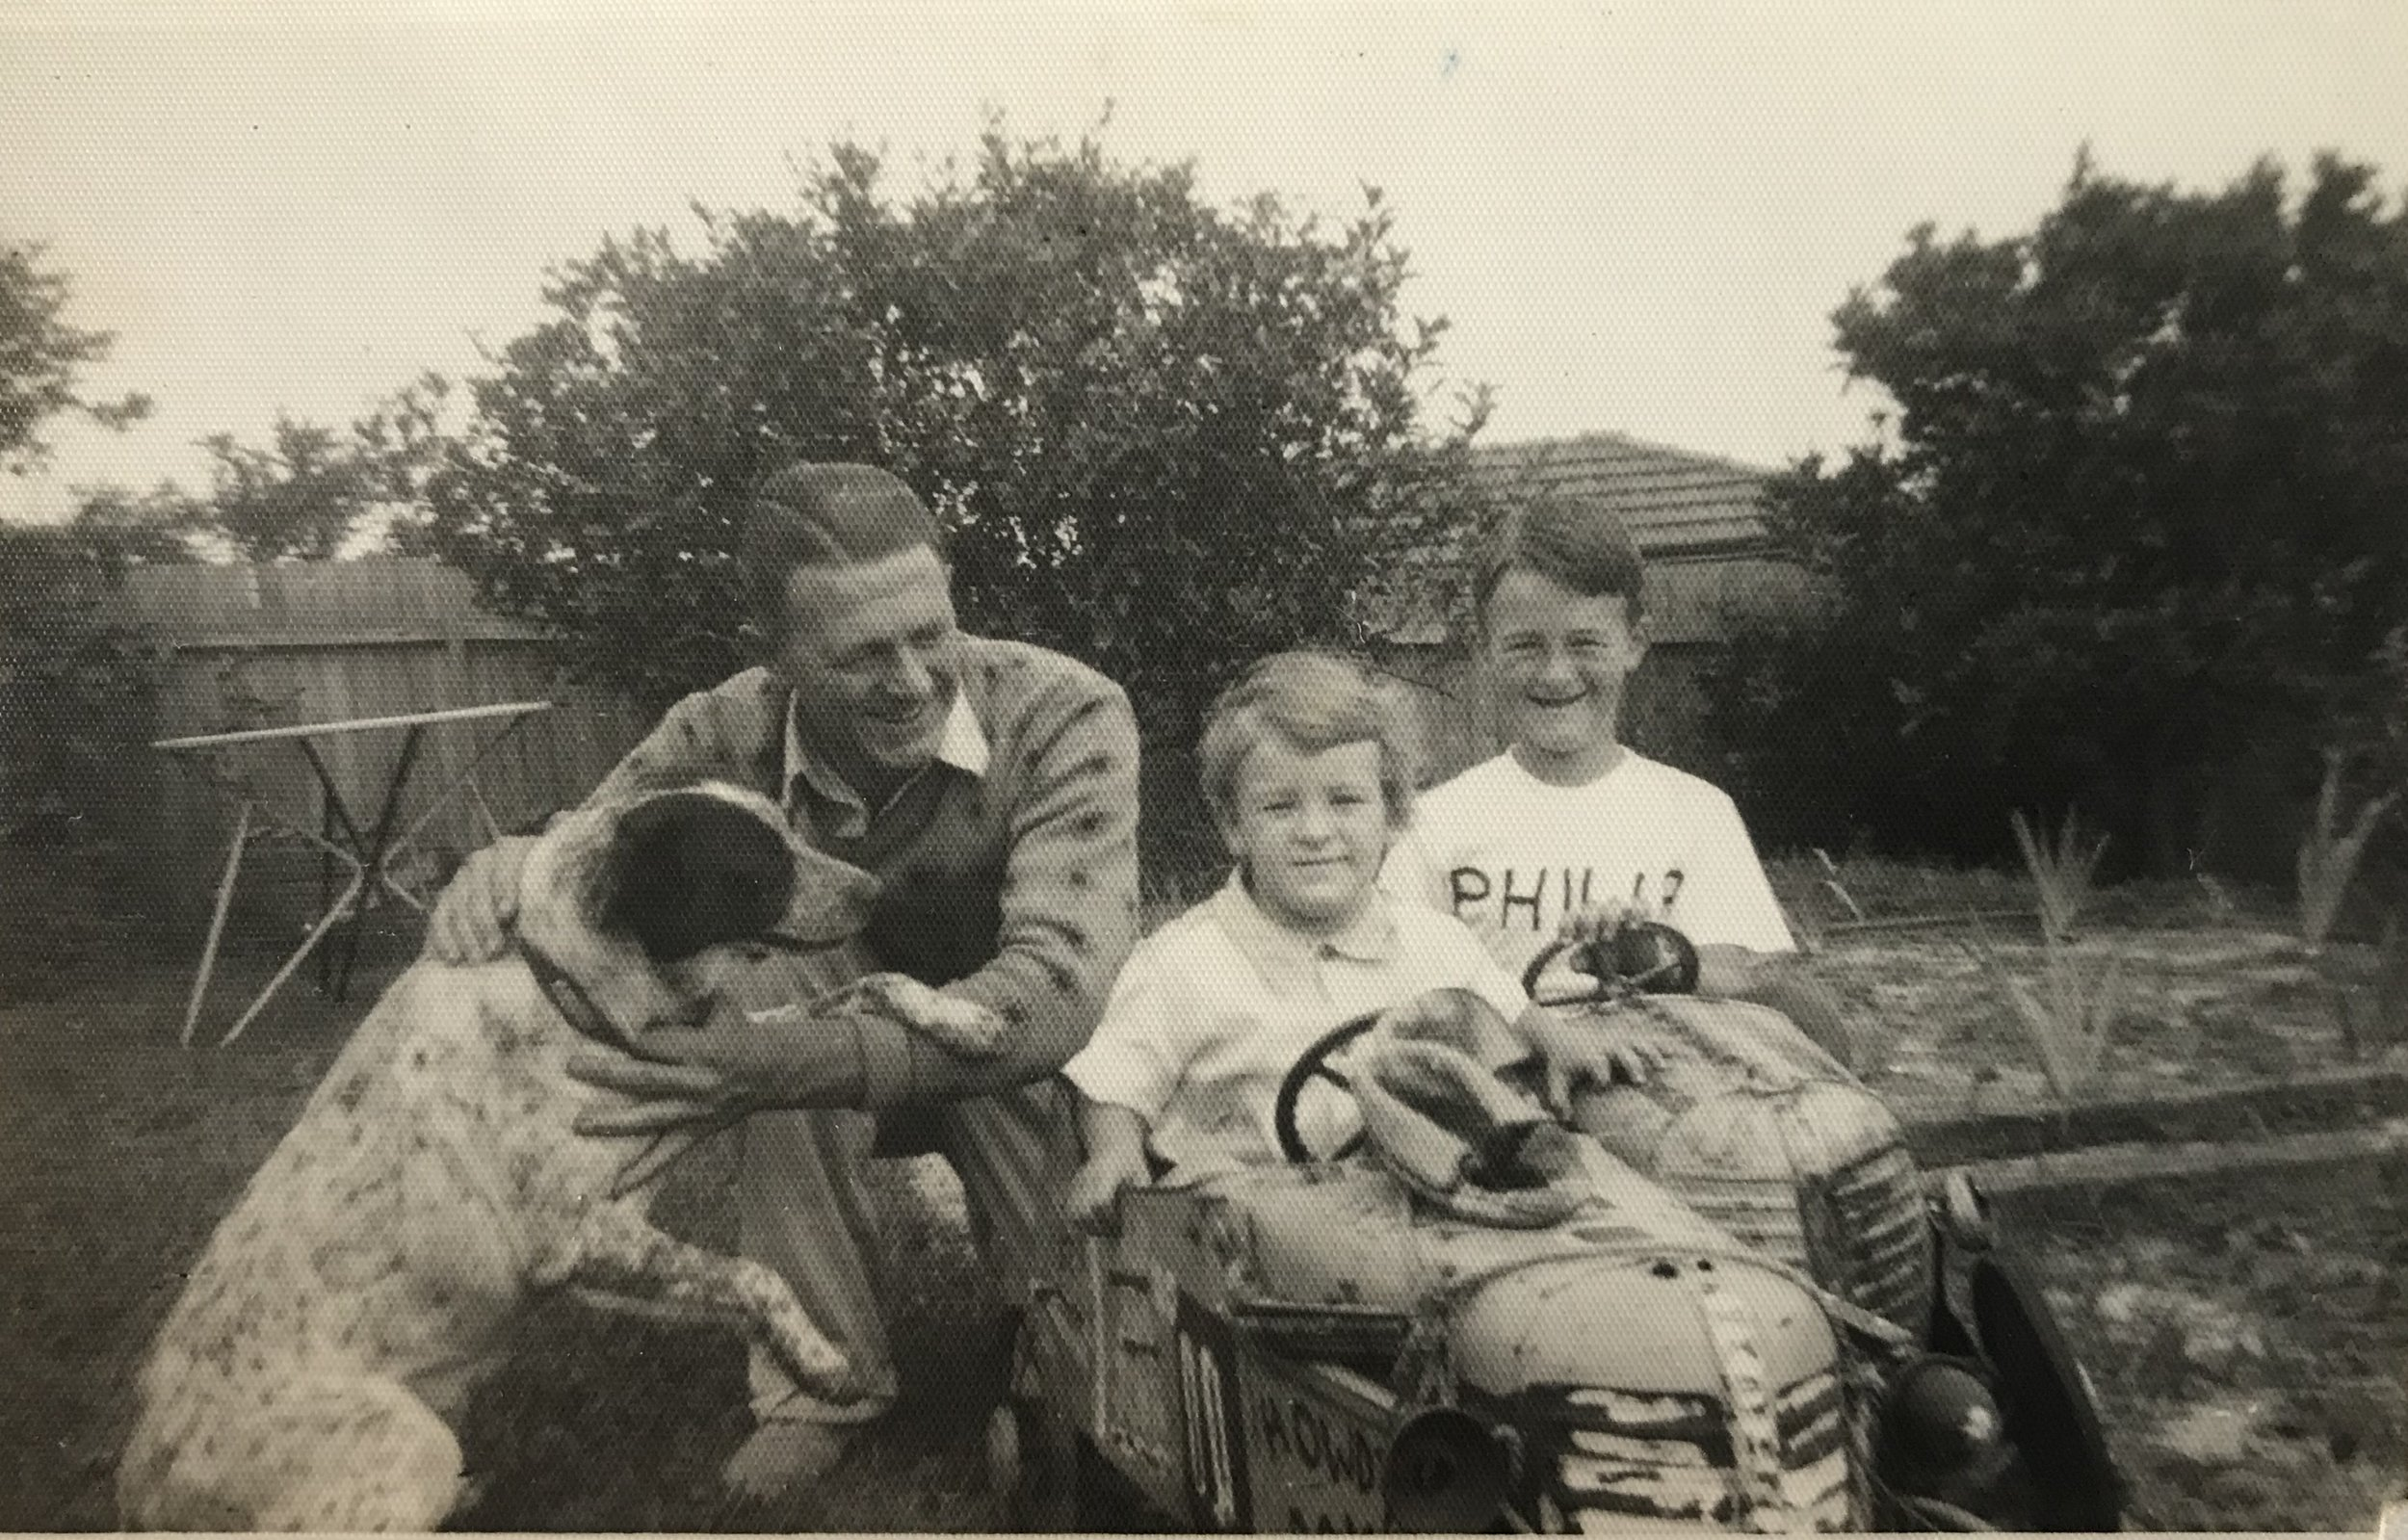 Monty the dog, with Cecil Coster and his children, in the back garden.